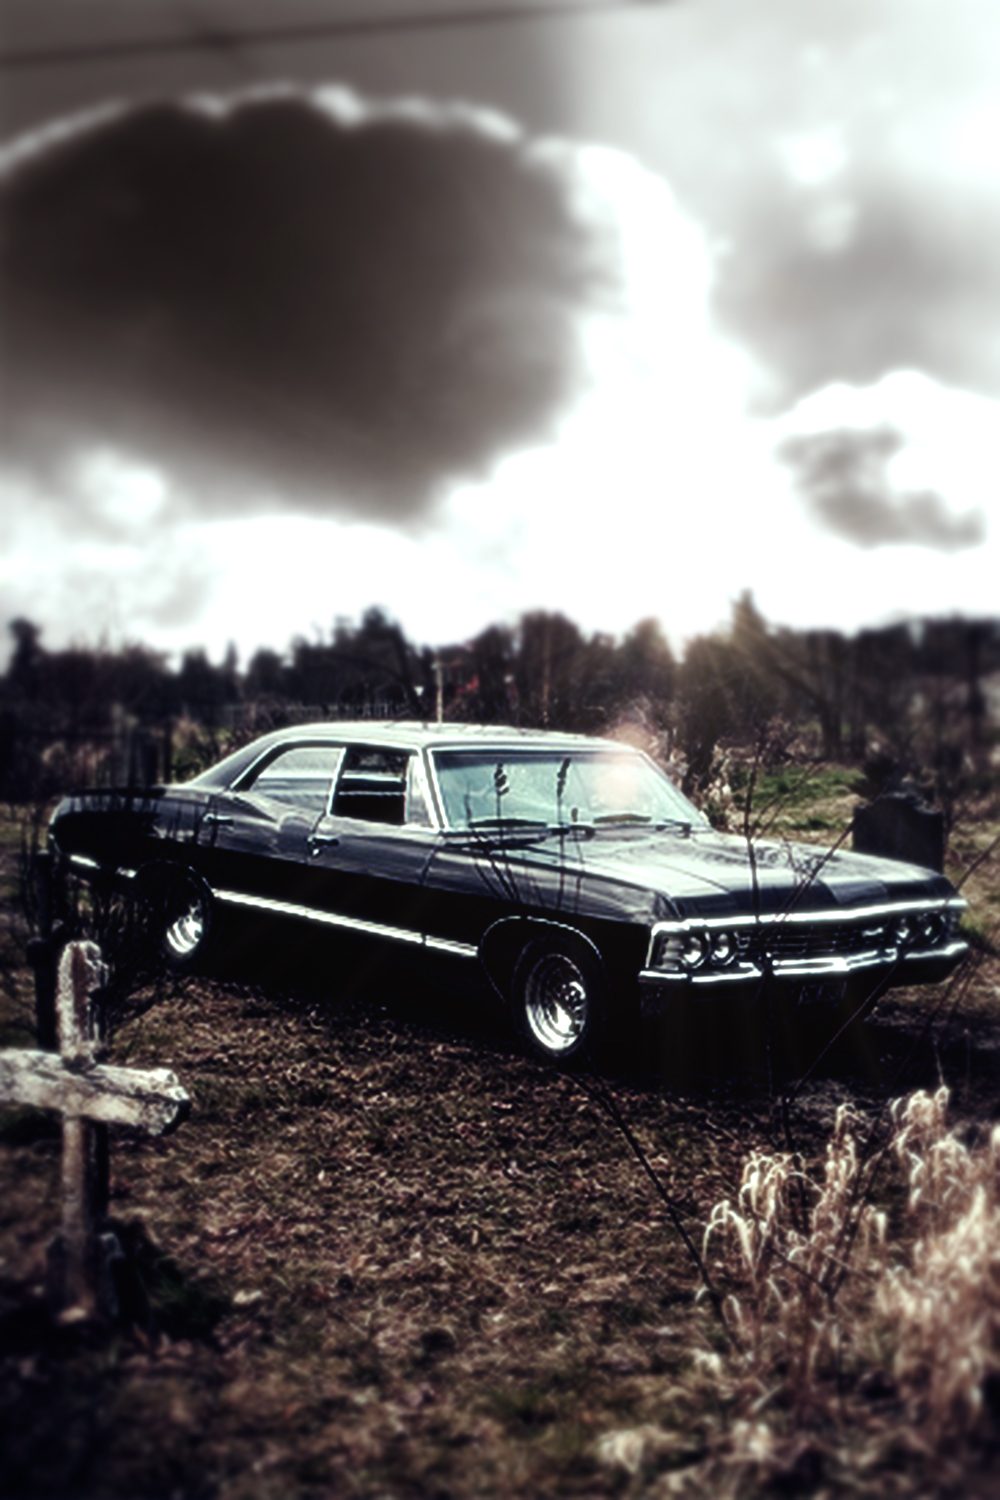 Image supernatural 67 chevy impala iphone wallpaper by - Supernatural phone background ...